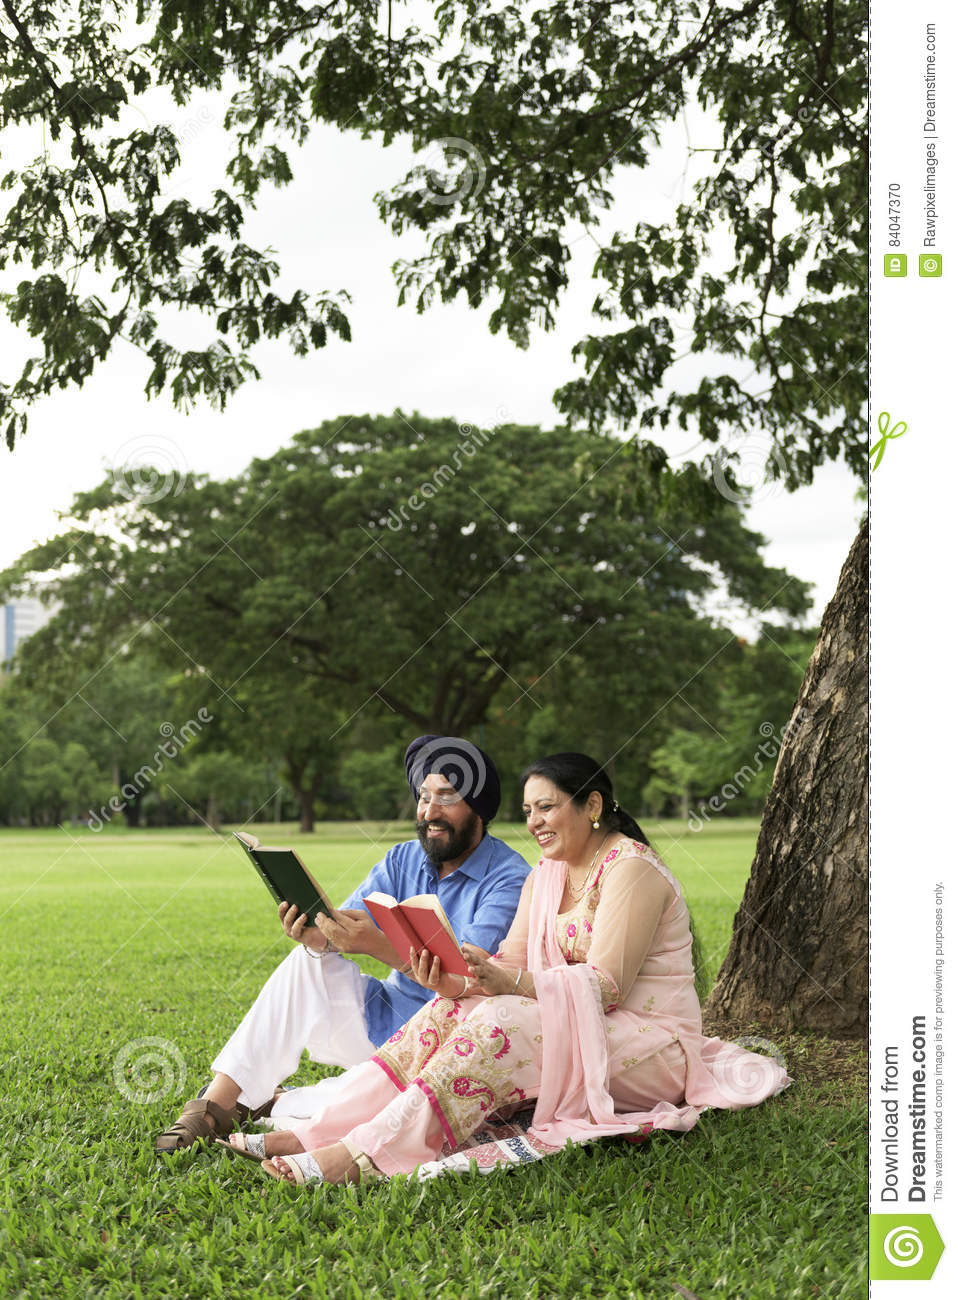 indian couple love care concept stock photo - image of picnic